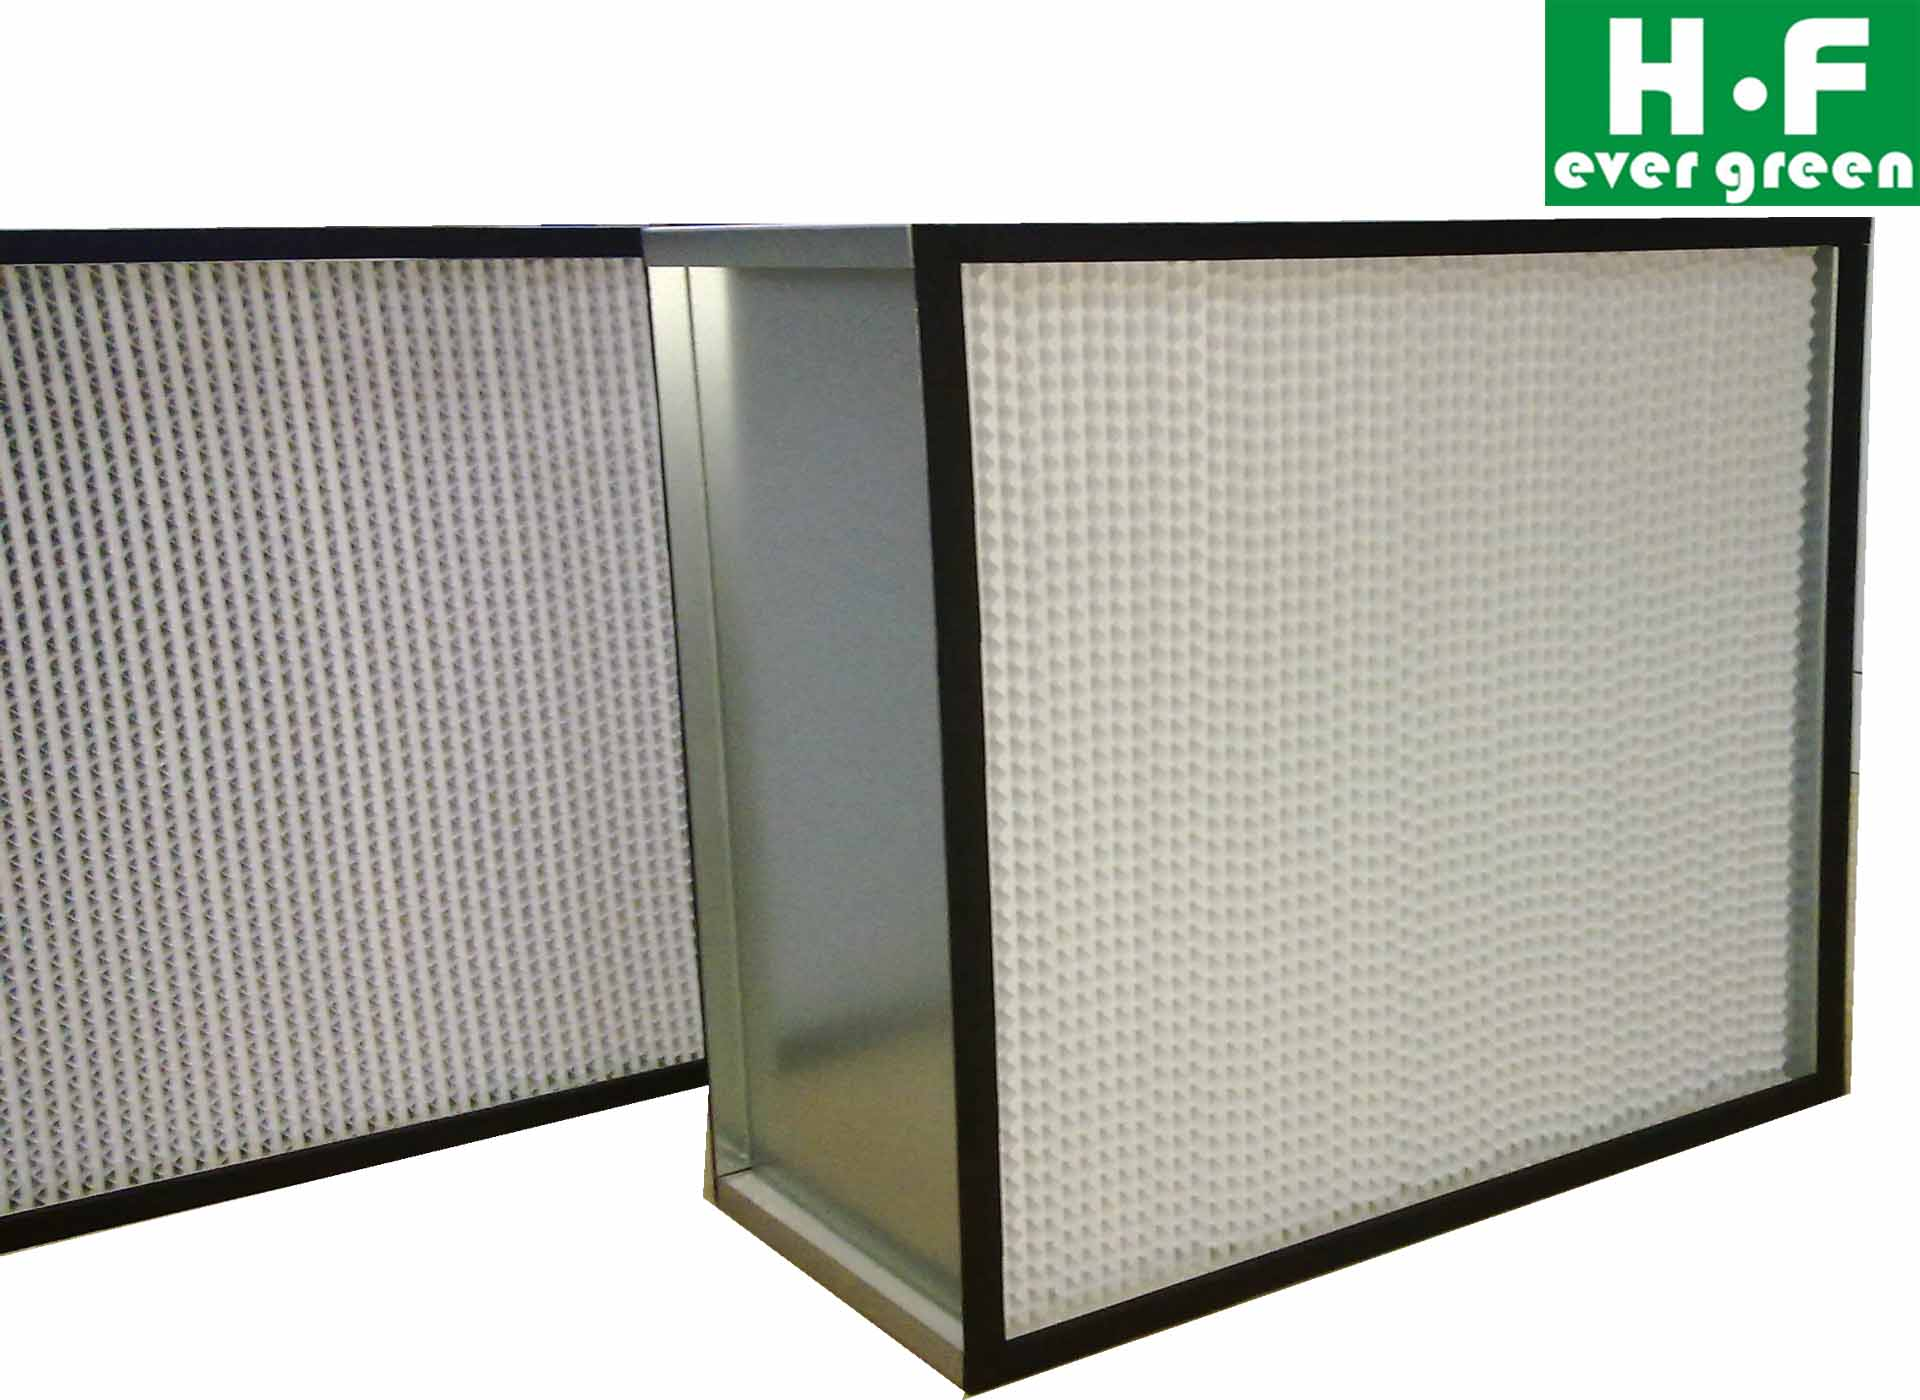 Deep pleat HEPA air filter with separator for clean room